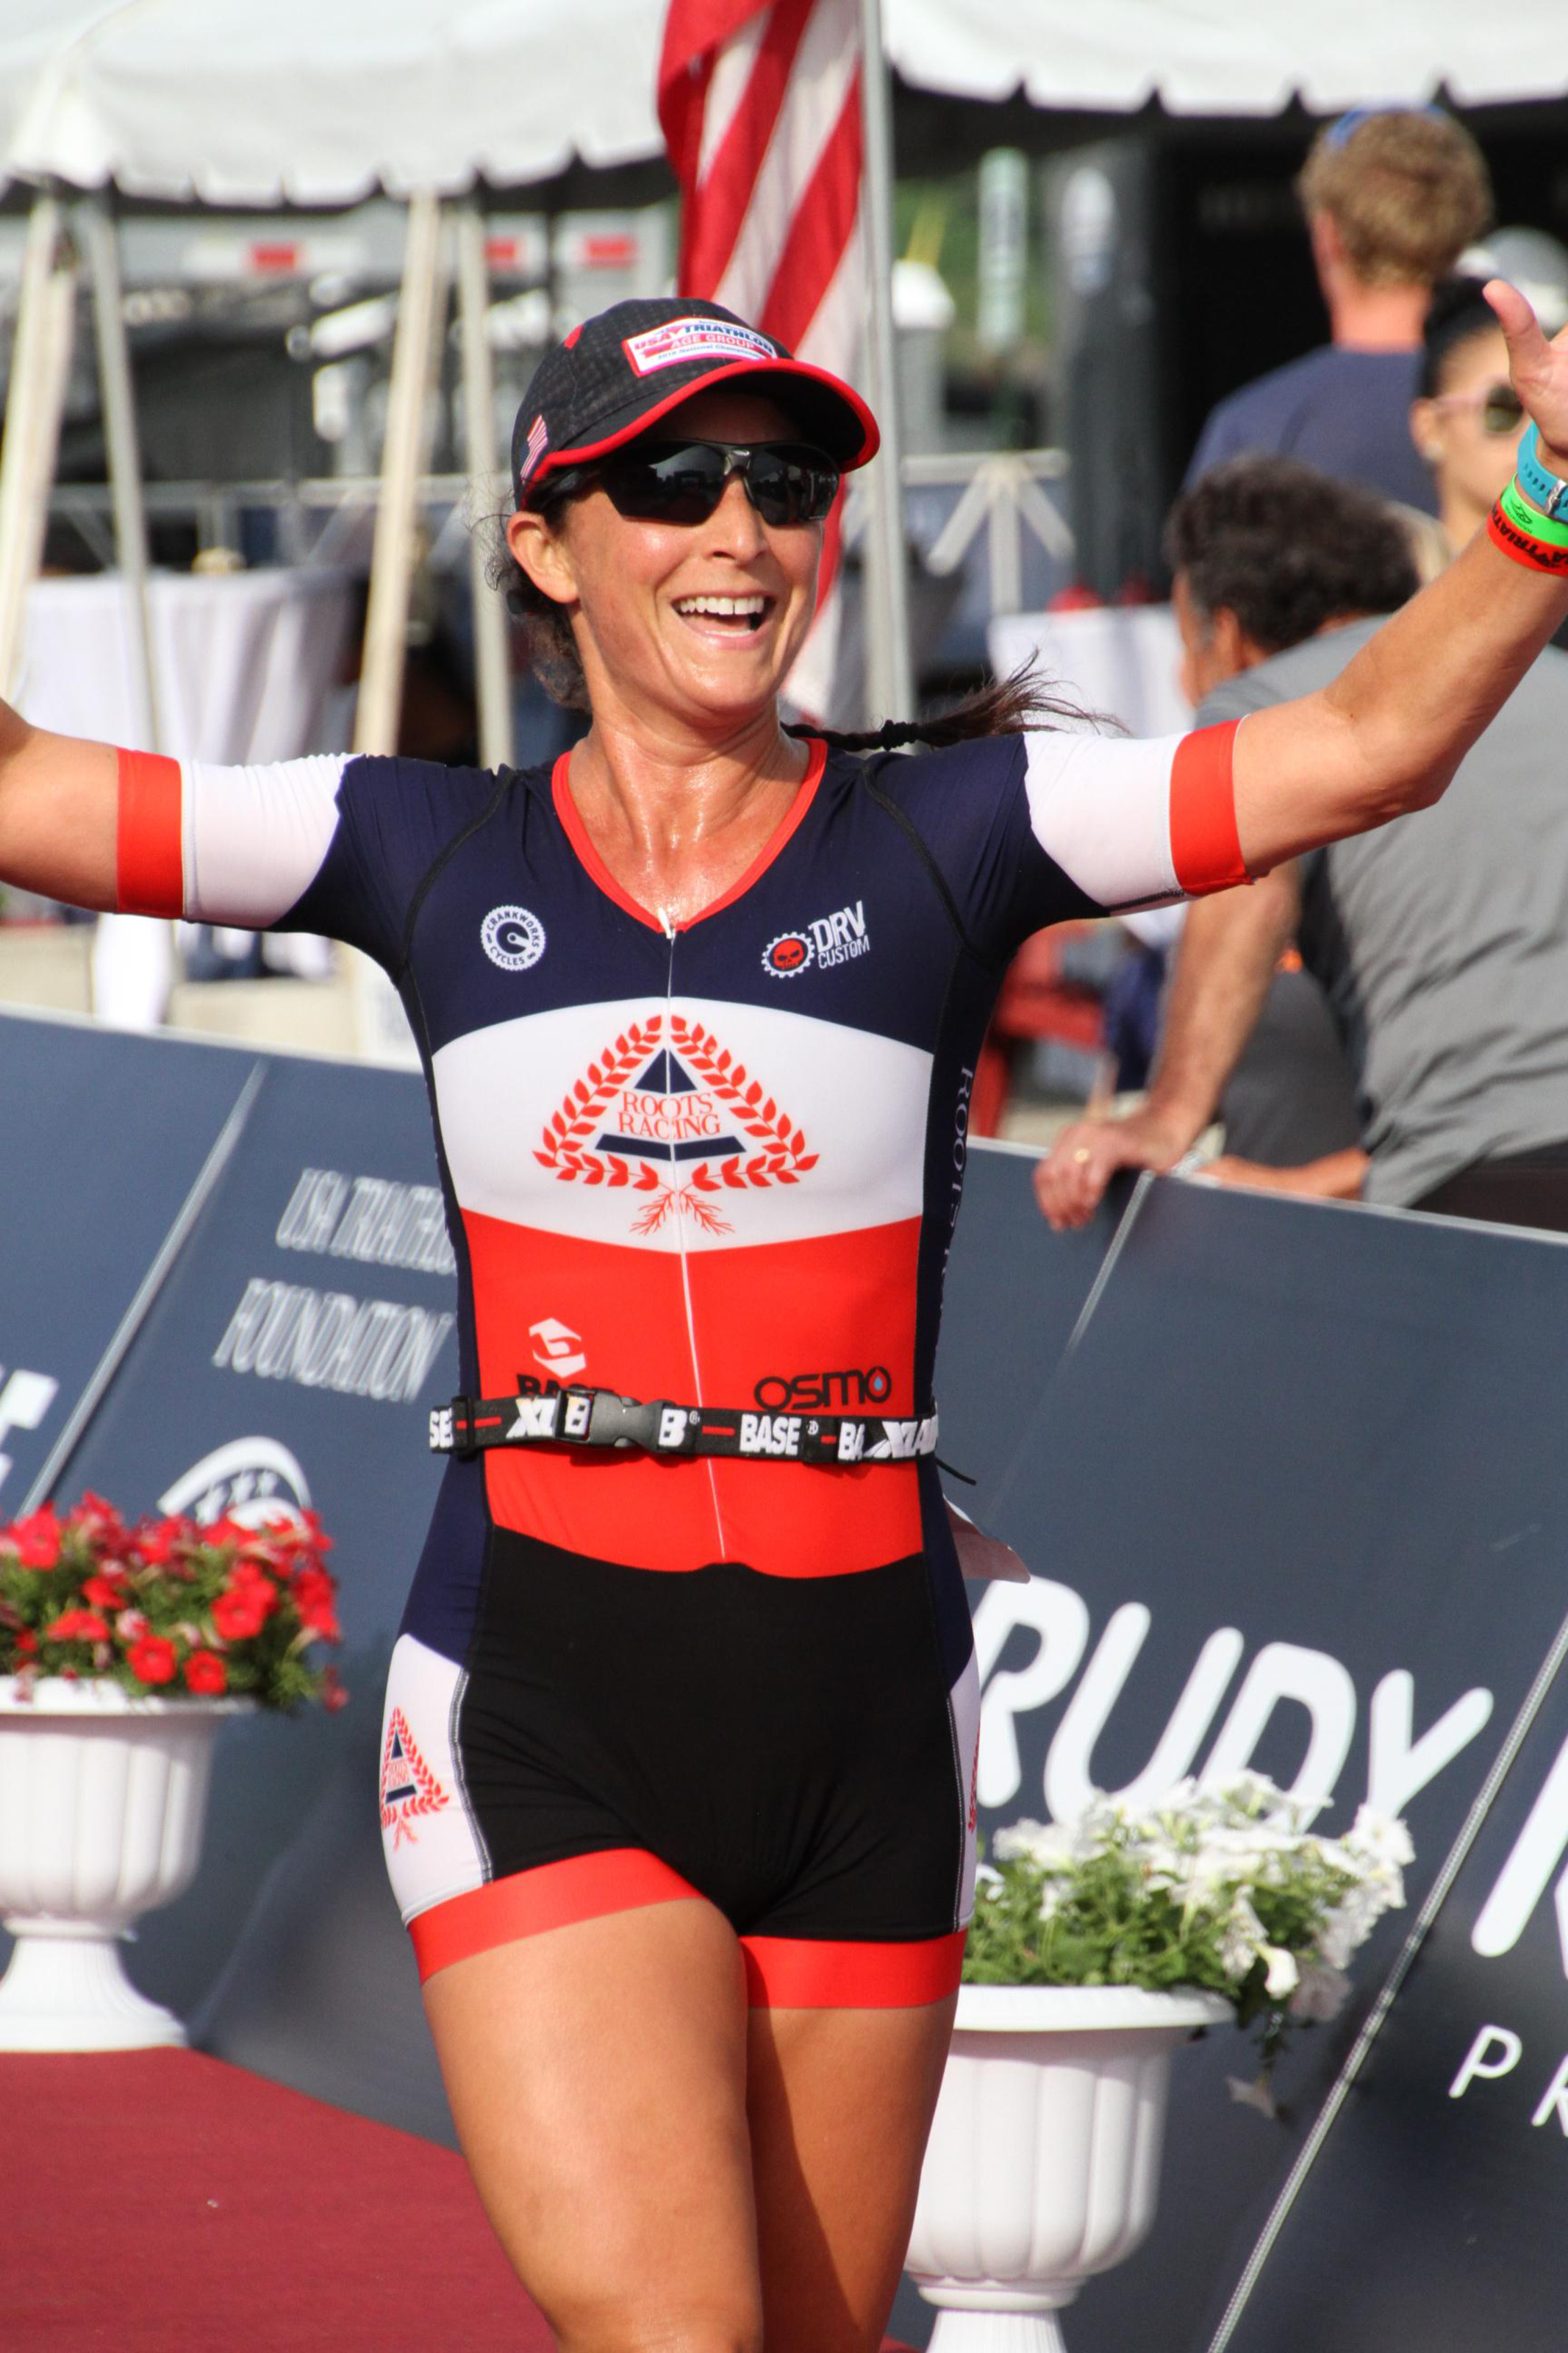 Treating the Multisport Athlete - The individual sports of swimming, cycling and running each requires unique patterns of anatomical movements. When all three are combined into a multisport endurance race, biomechanical efficiency, neuromuscular control and optimal cardiopulmonary output is essential. Many athletes, both amateur and professional alike, deal with repetitive strain injuries due to unilateral dominance, joint mobility restrictions and improper myofascial recruitment. Treating these athletes requires the skill to accurately assess orthopedic dysfunctions and to elicit efficient and timely treatments via Trigger Point needling to help them return to their training and racing schedules as quickly as possible.Join us for a CEU packed weekend and learn how to take care of the multisport triathlete!